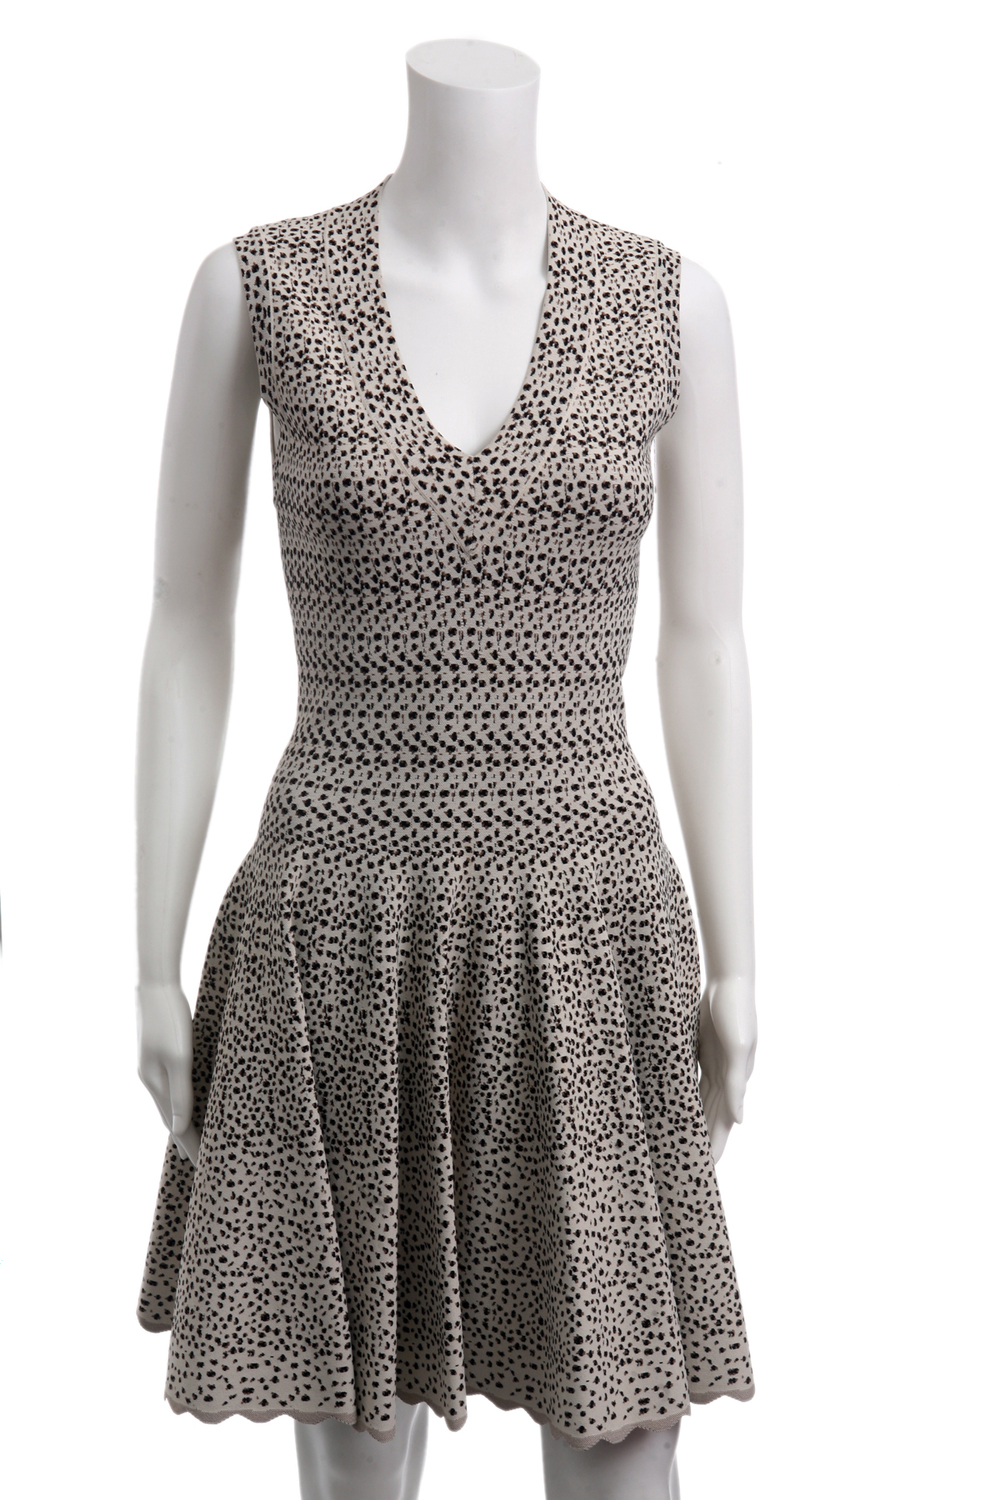 Alaia Dress Price ALAIA Dress Pre owned